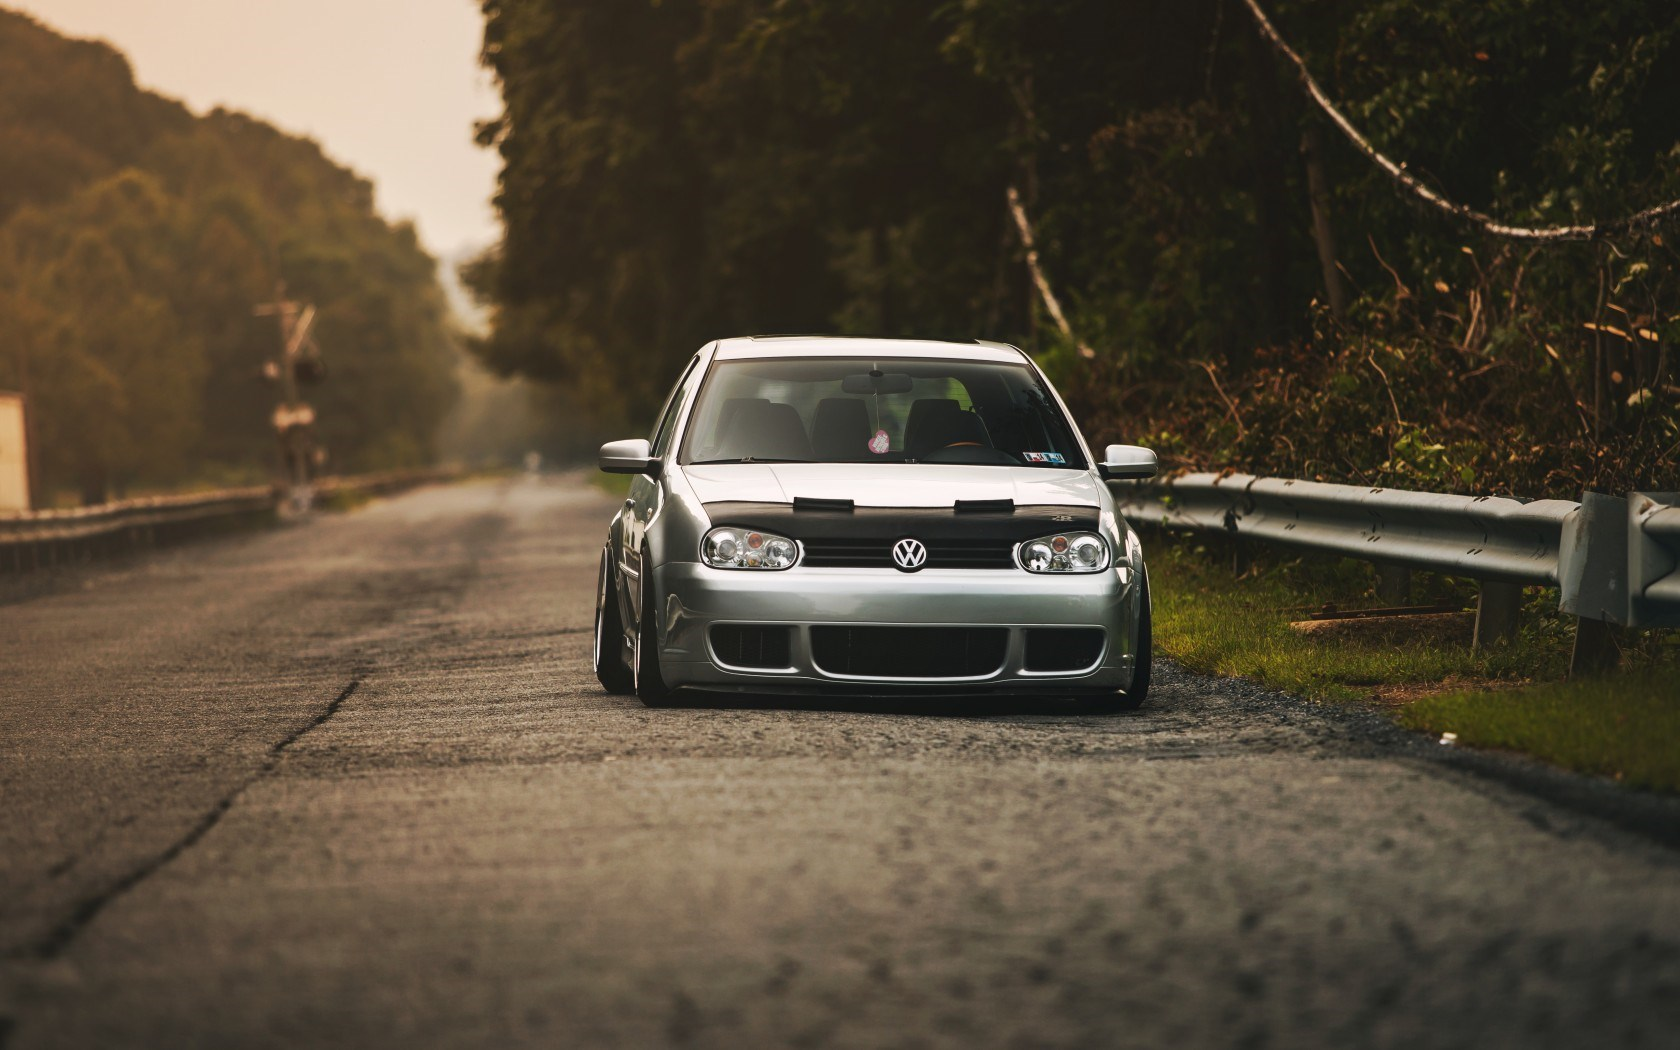 Volkswagen Golf MK4 Tuning Car Road